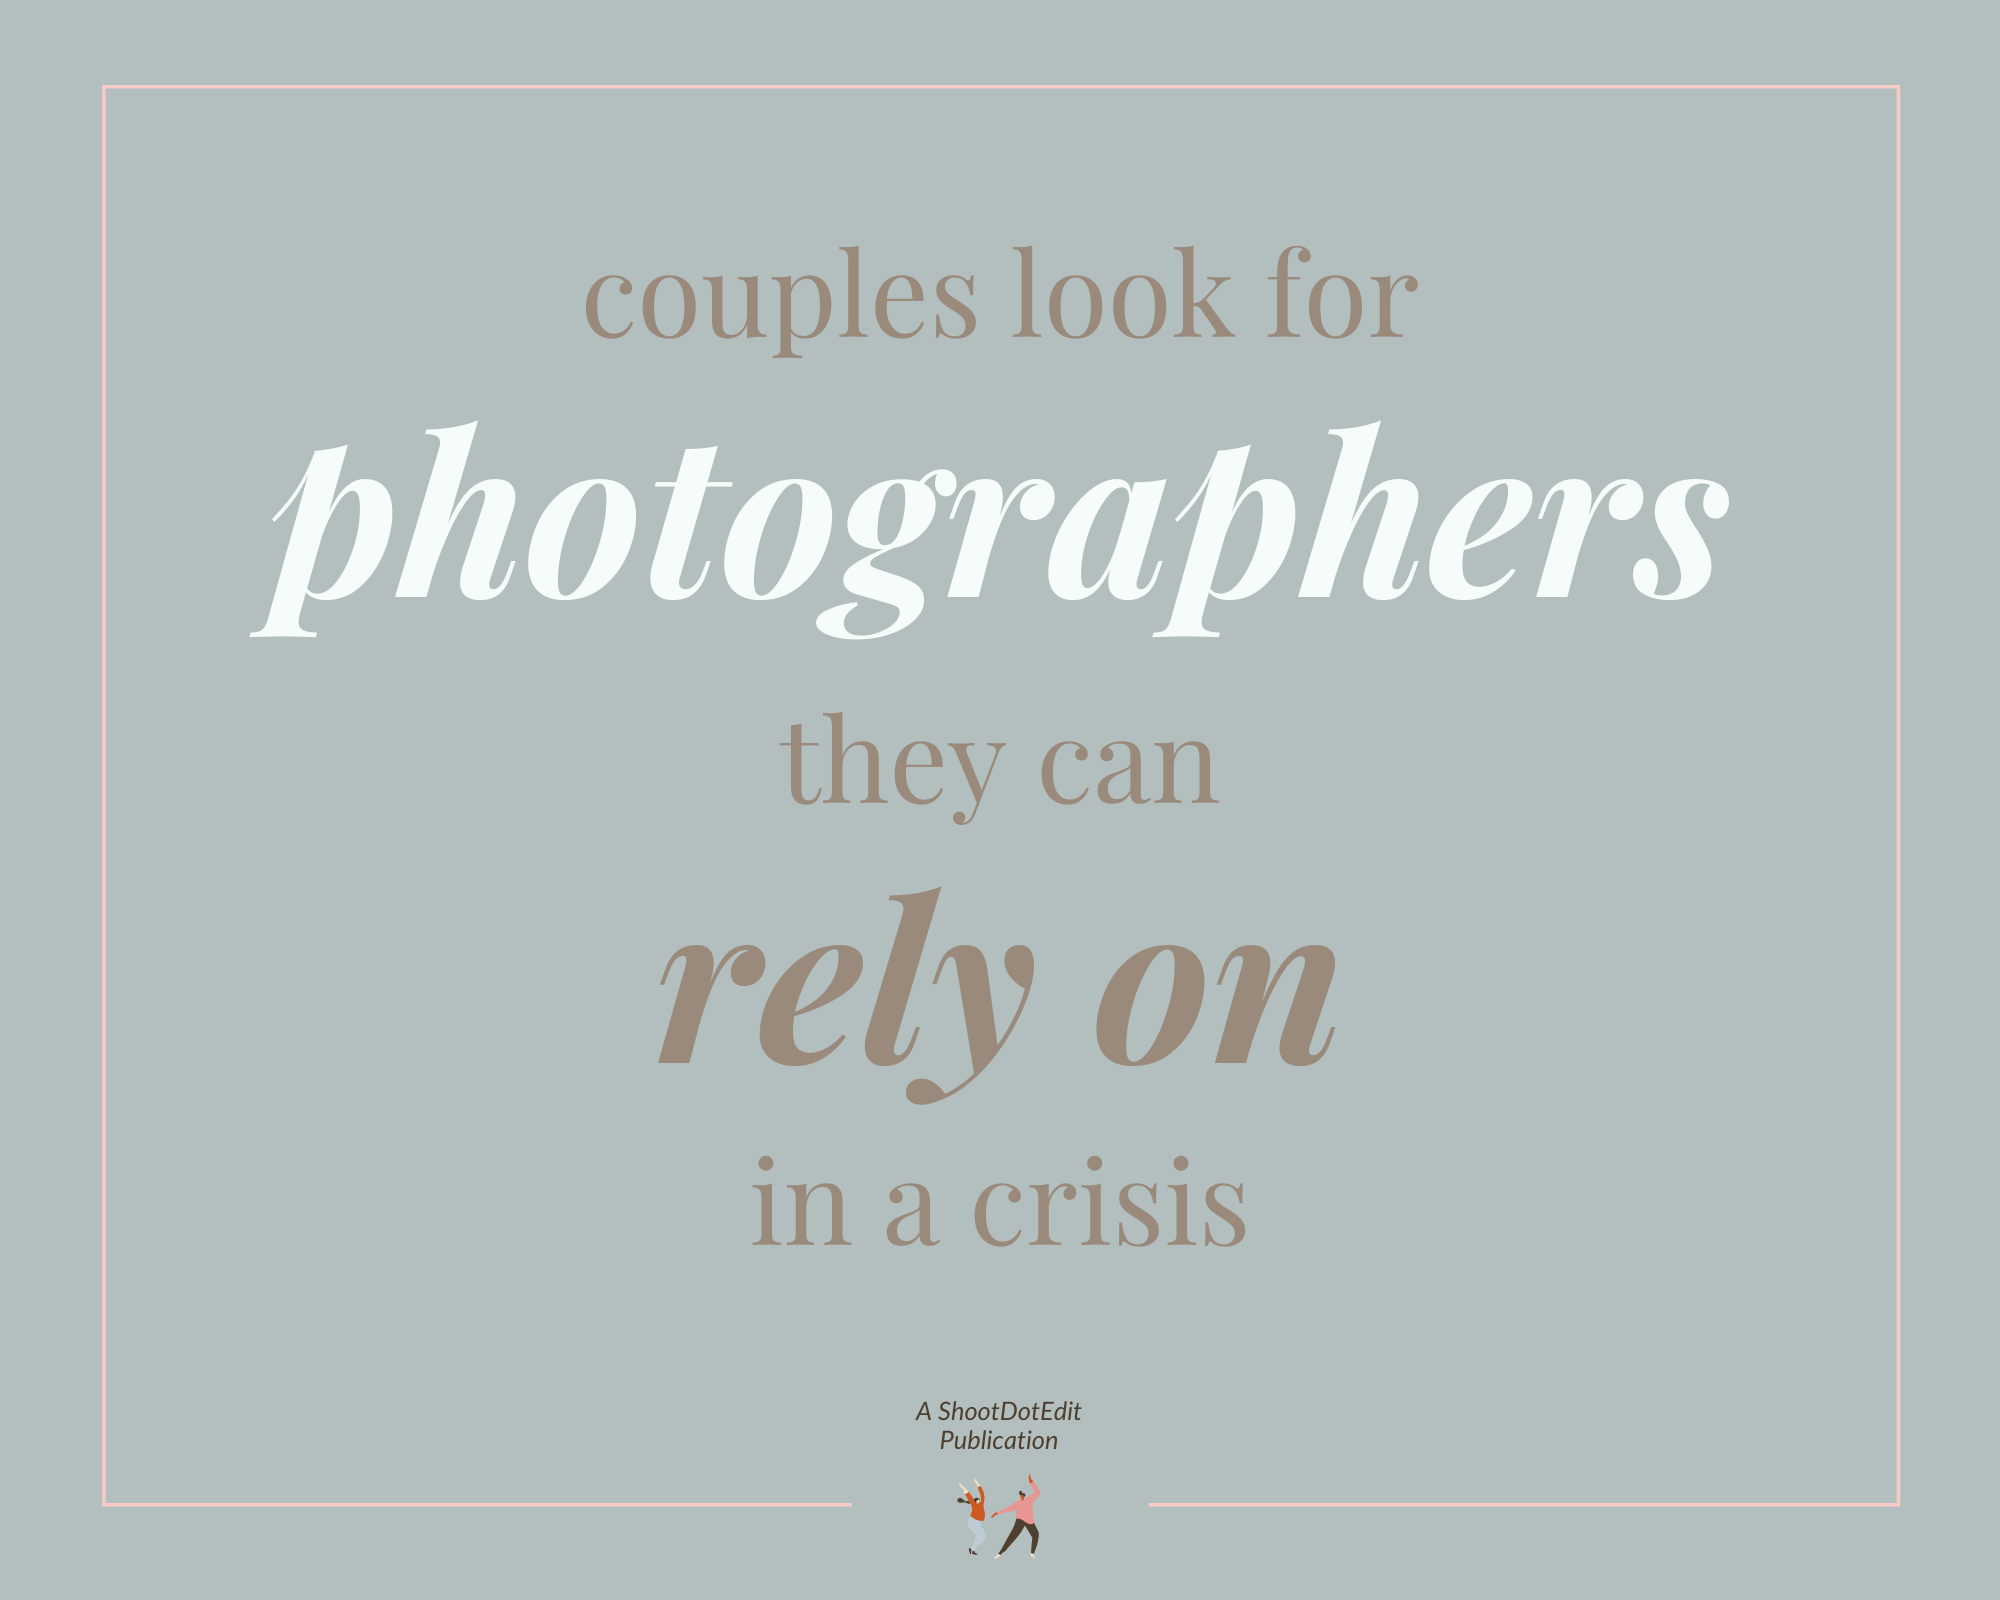 Infographic stating couples look for photographers they can rely on in a crisis